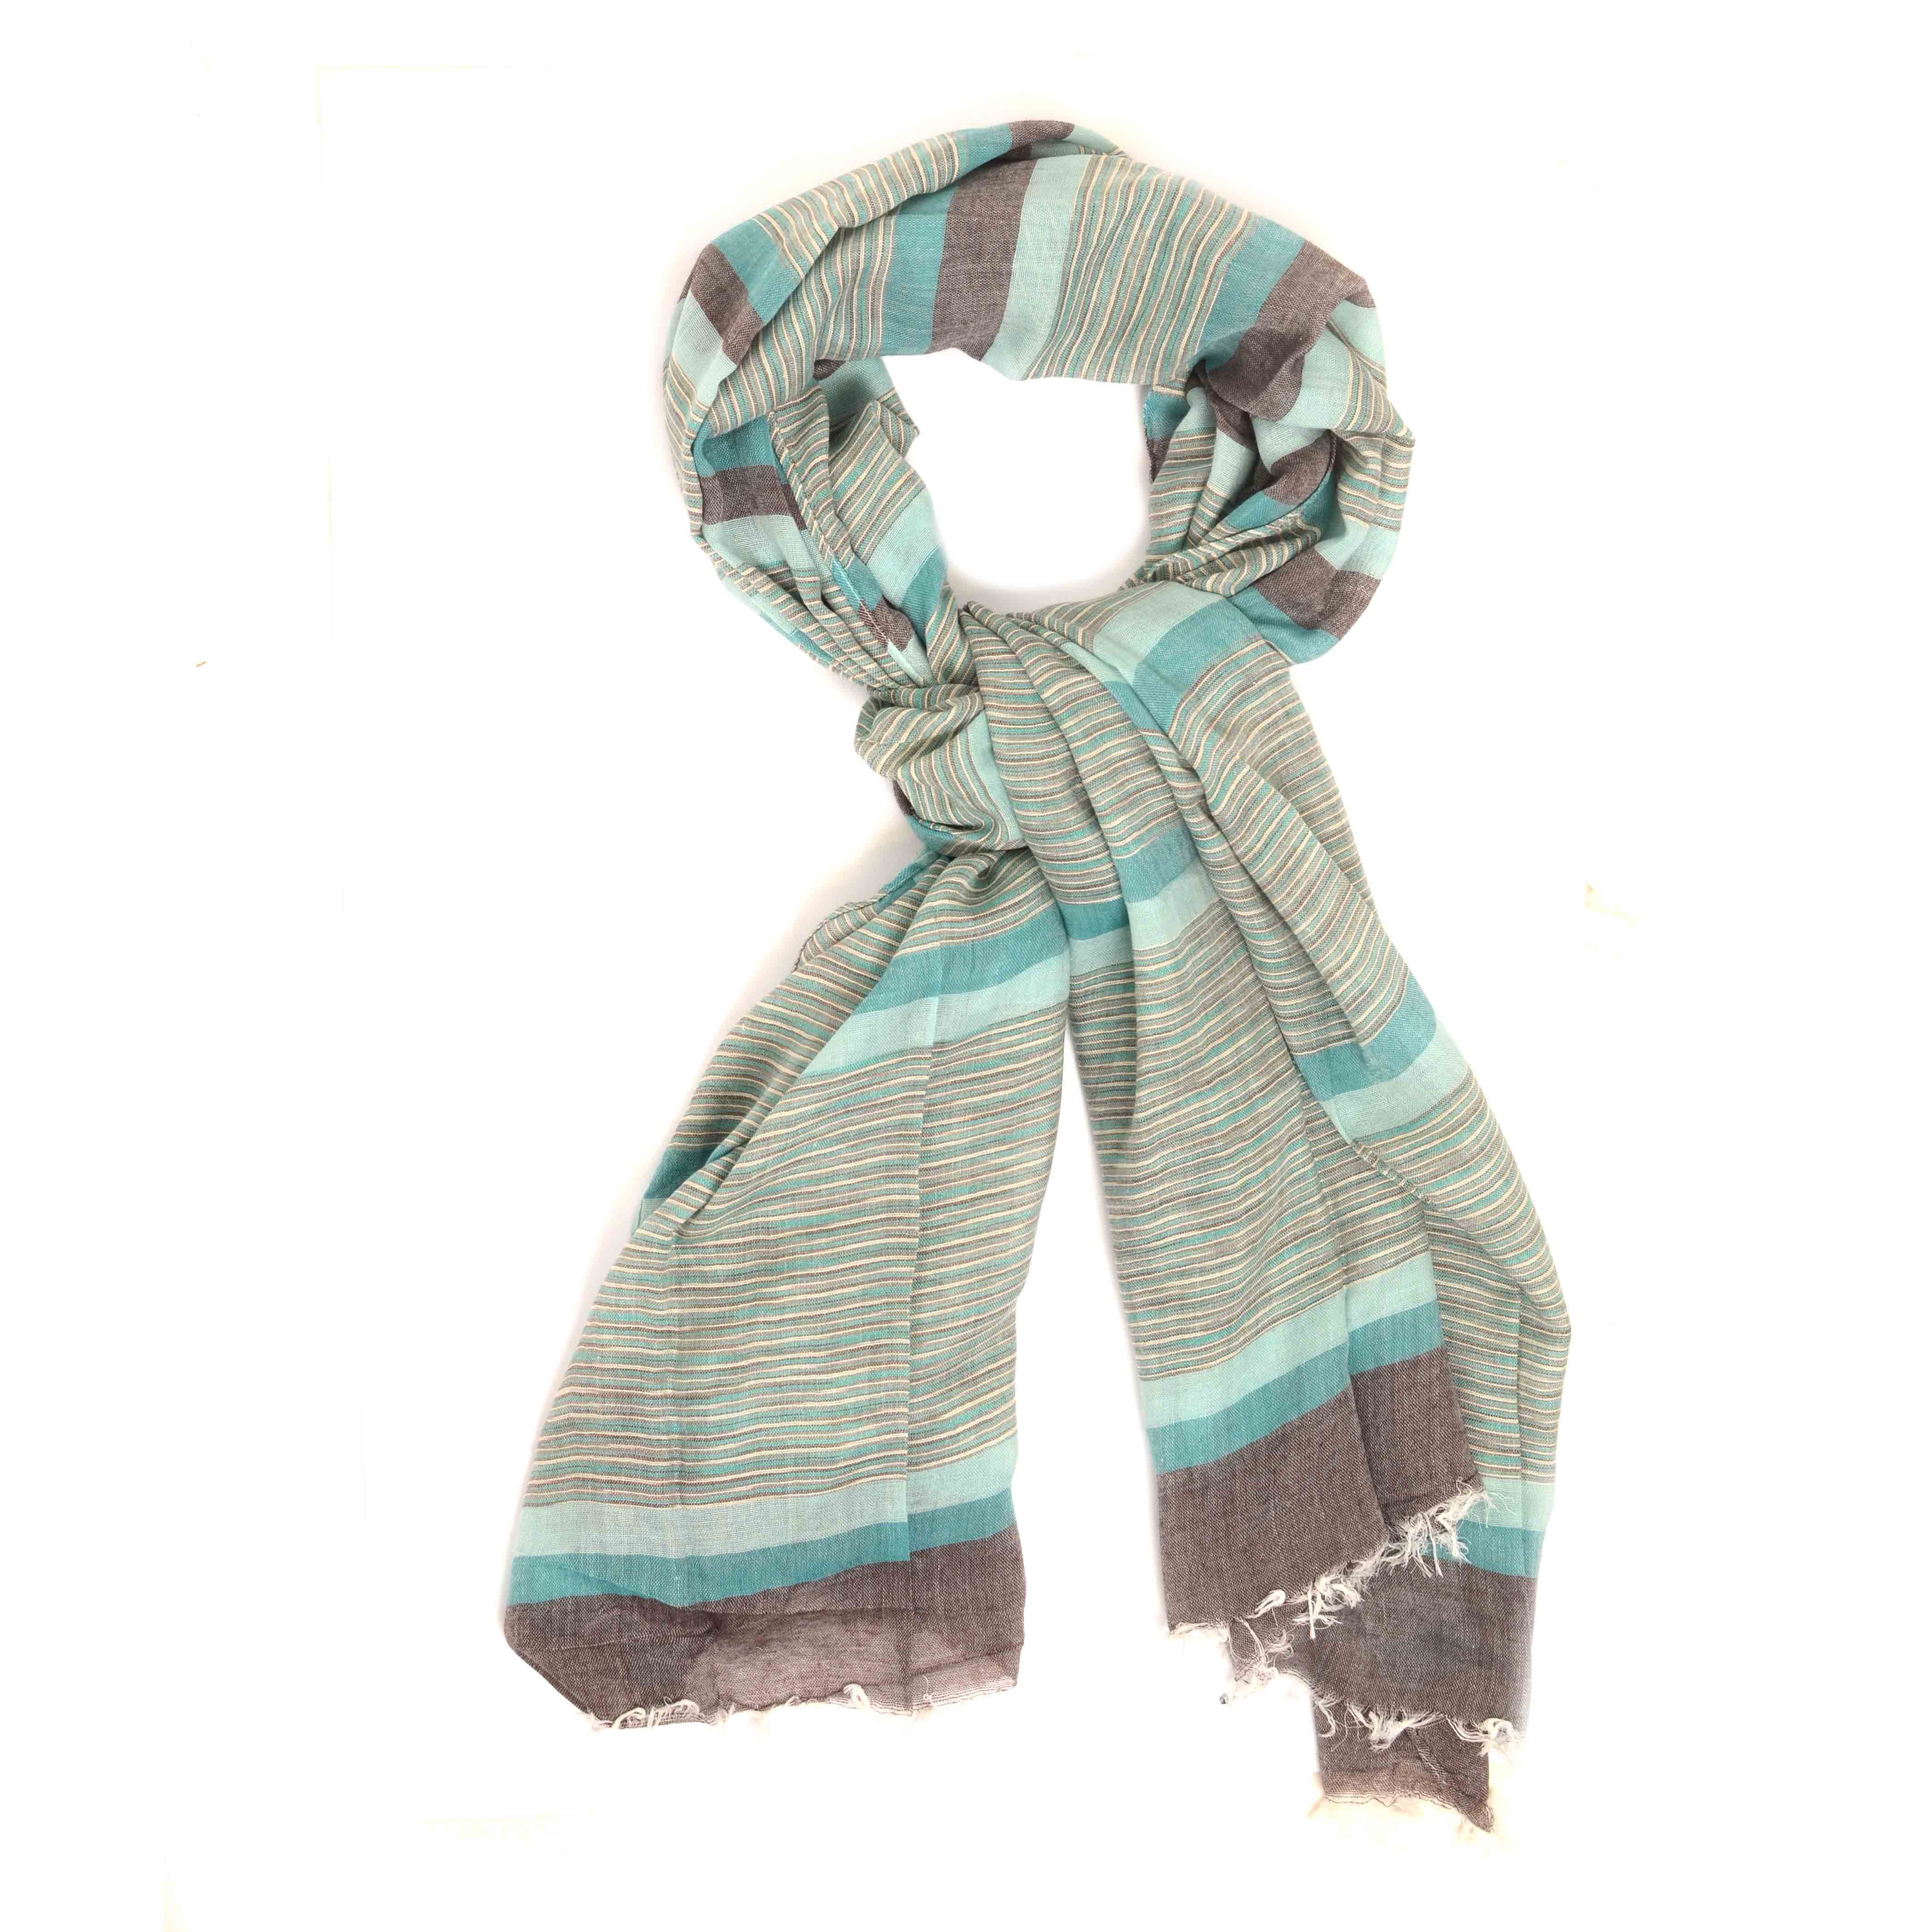 Maceo | Scarf with stripe dessin in grey tints and light blue accents